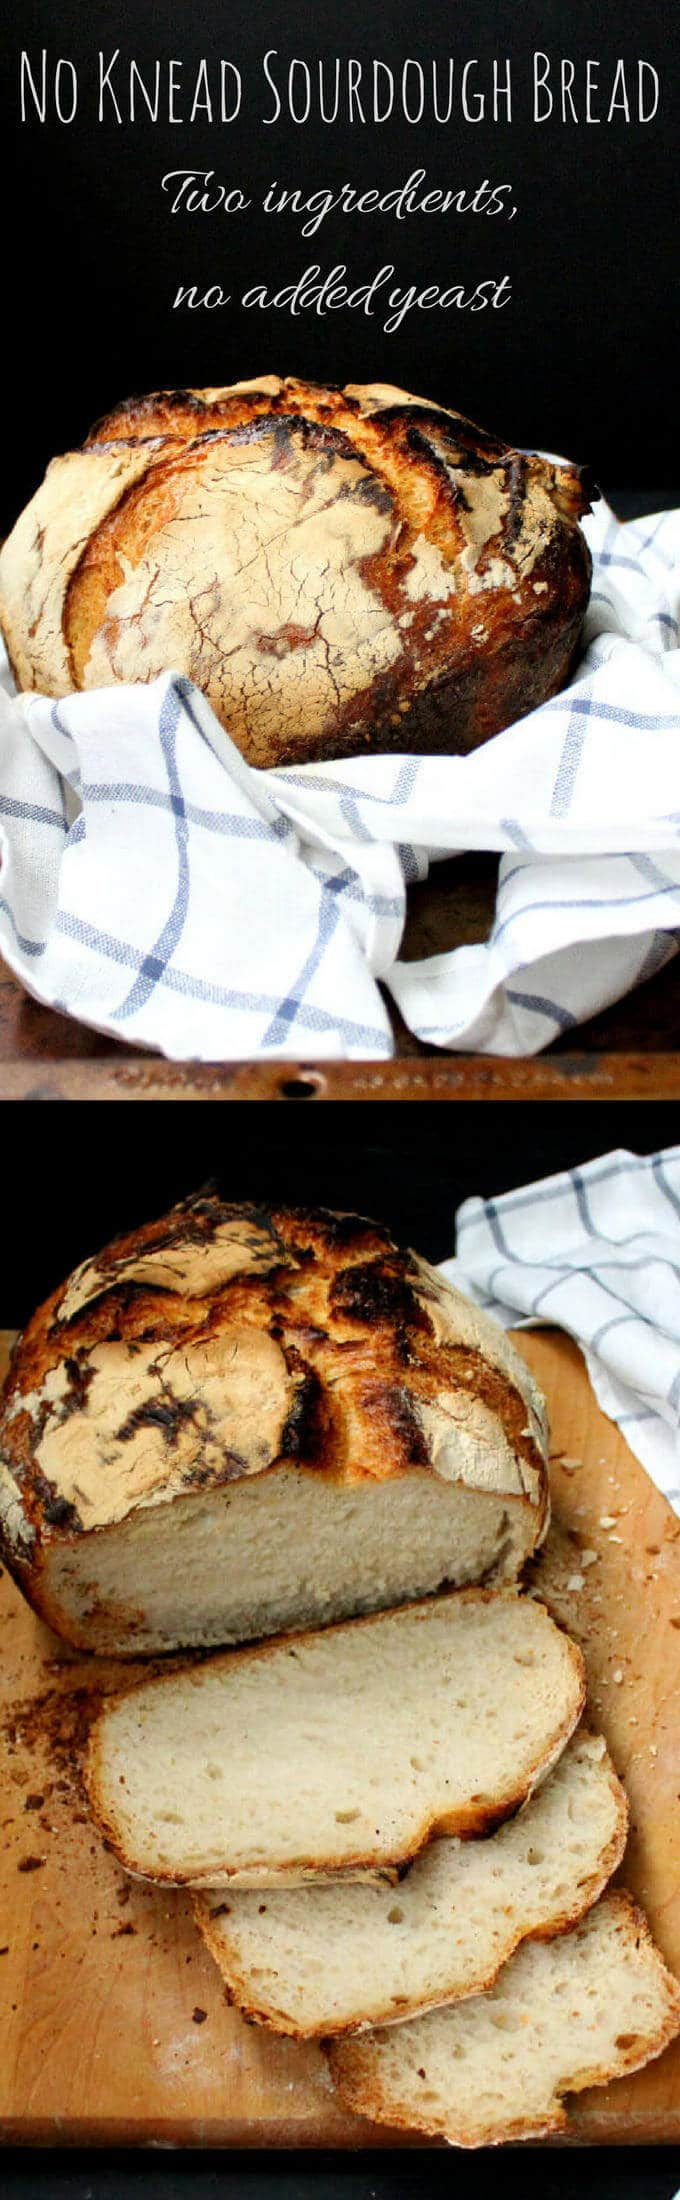 No Knead Sourdough Bread with just two ingredients #bread #sourdough #vegan - HolyCowVegan.net